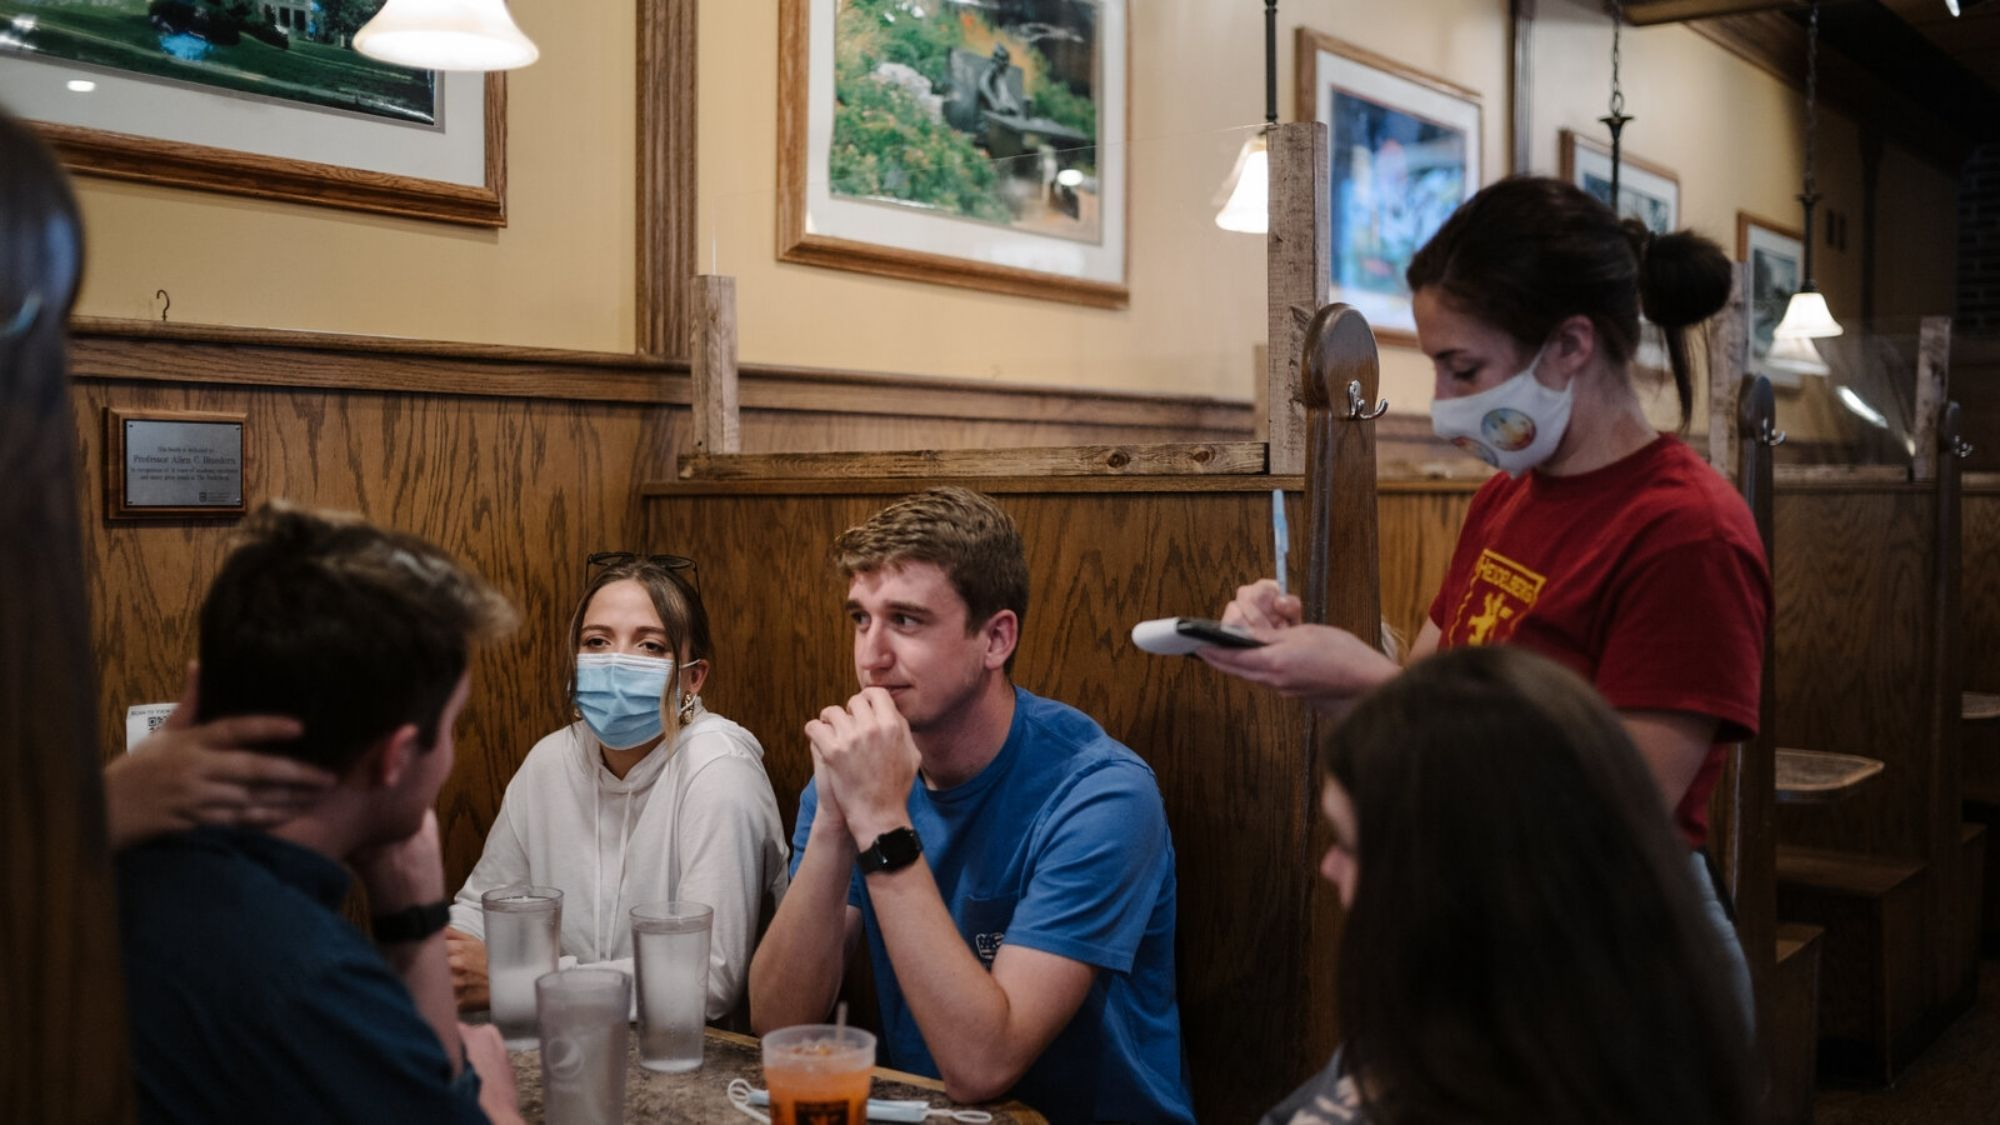 Free at last! US lifts indoor mask mandate for vaccinated people